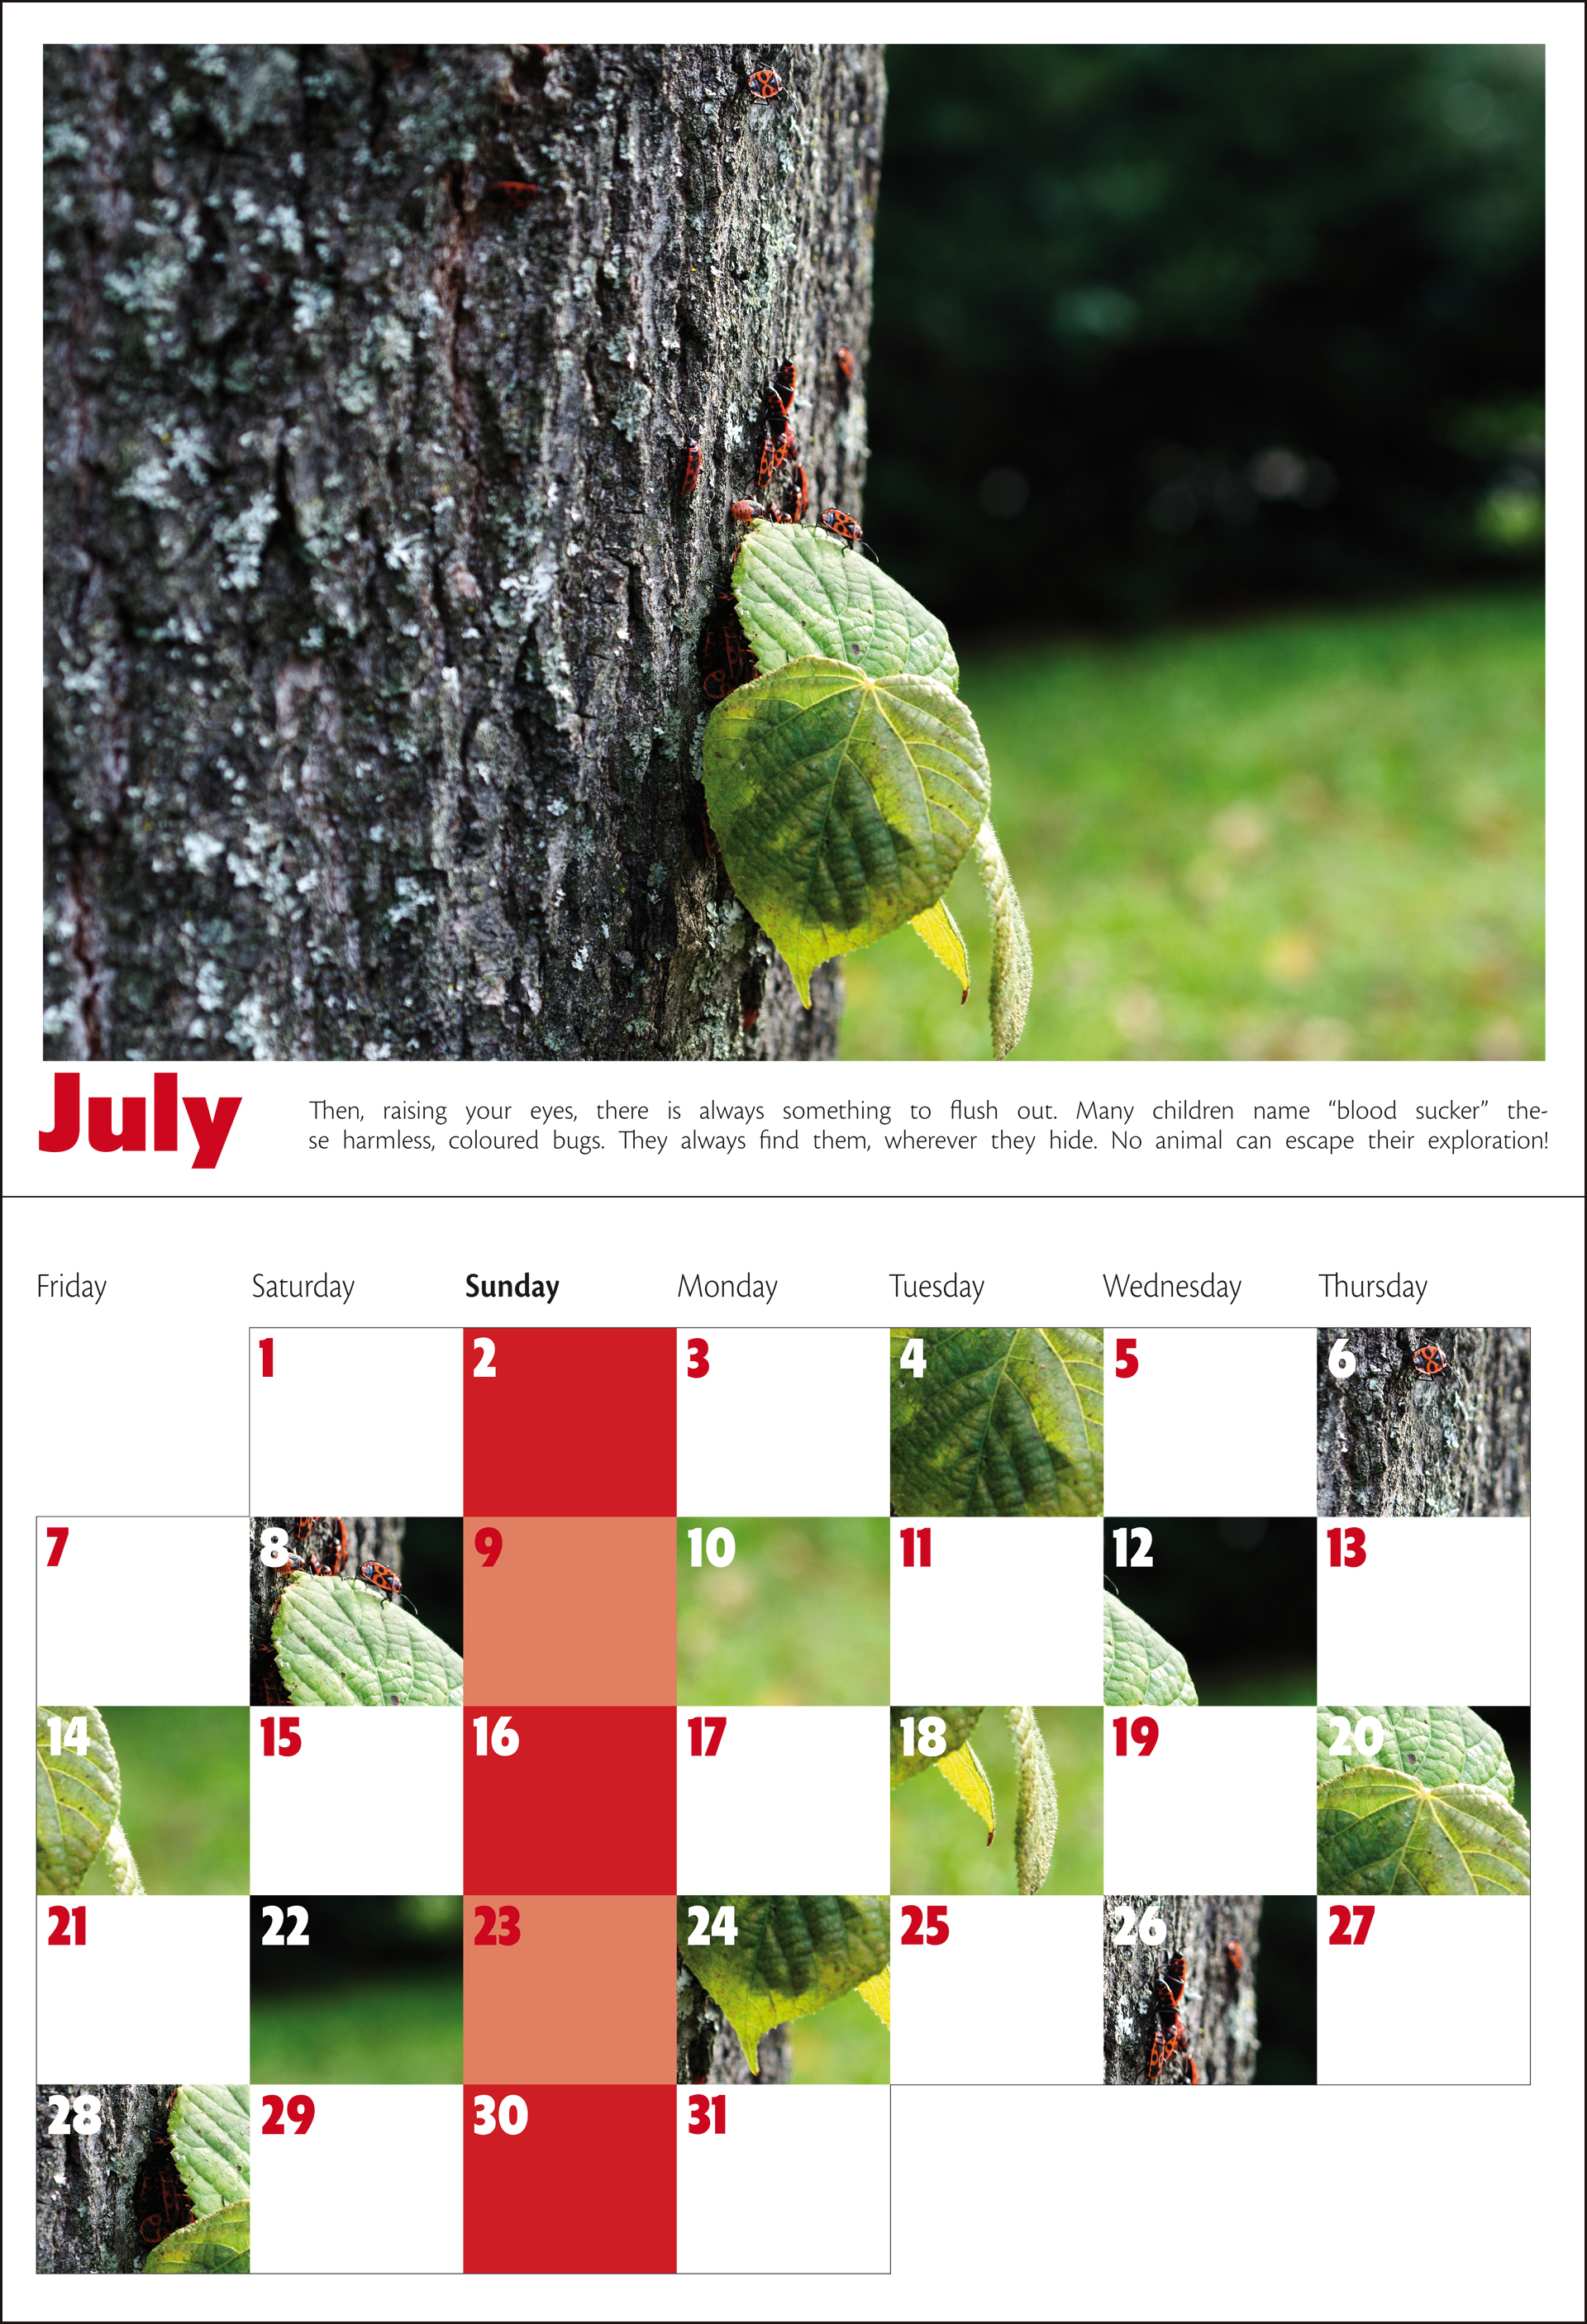 A calendare with pictures' details